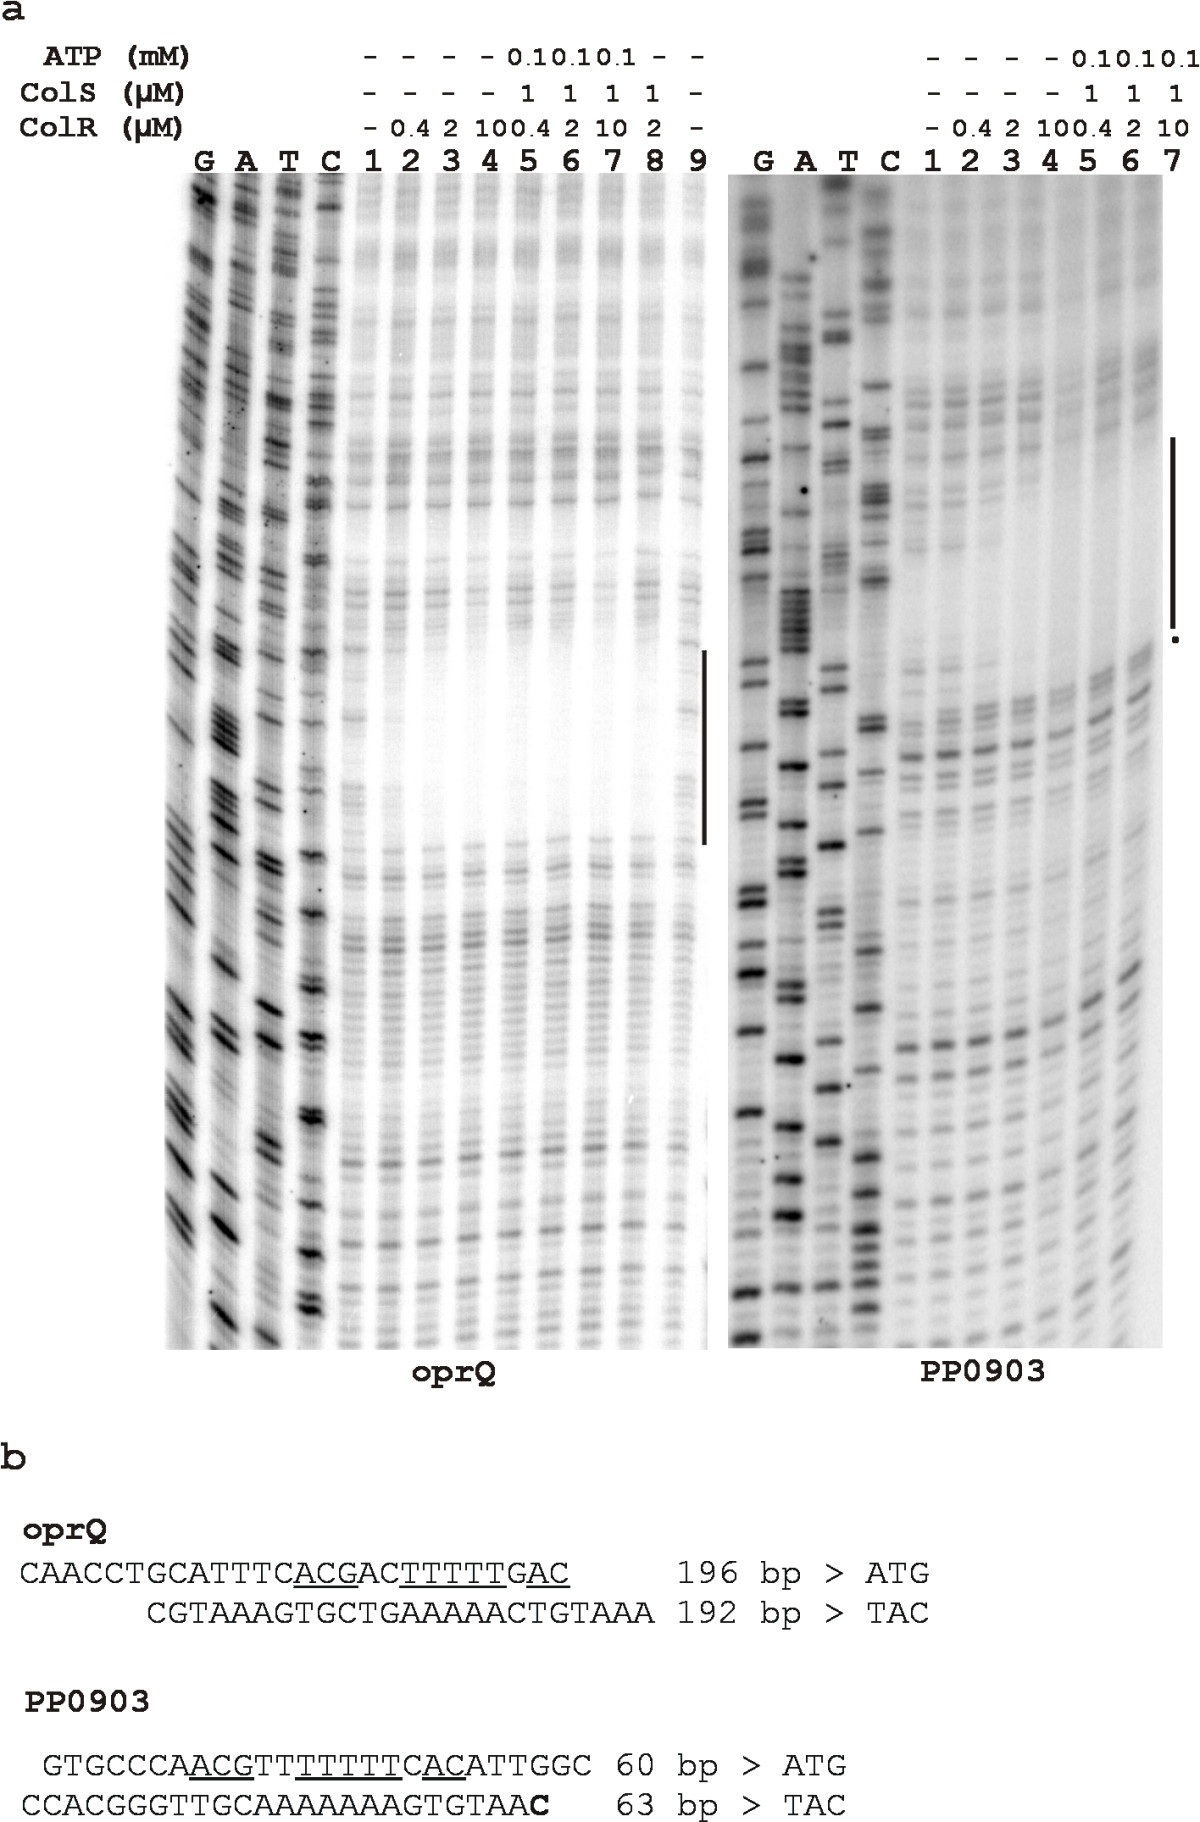 https://static-content.springer.com/image/art%3A10.1186%2F1471-2199-10-46/MediaObjects/12867_2008_Article_414_Fig2_HTML.jpg